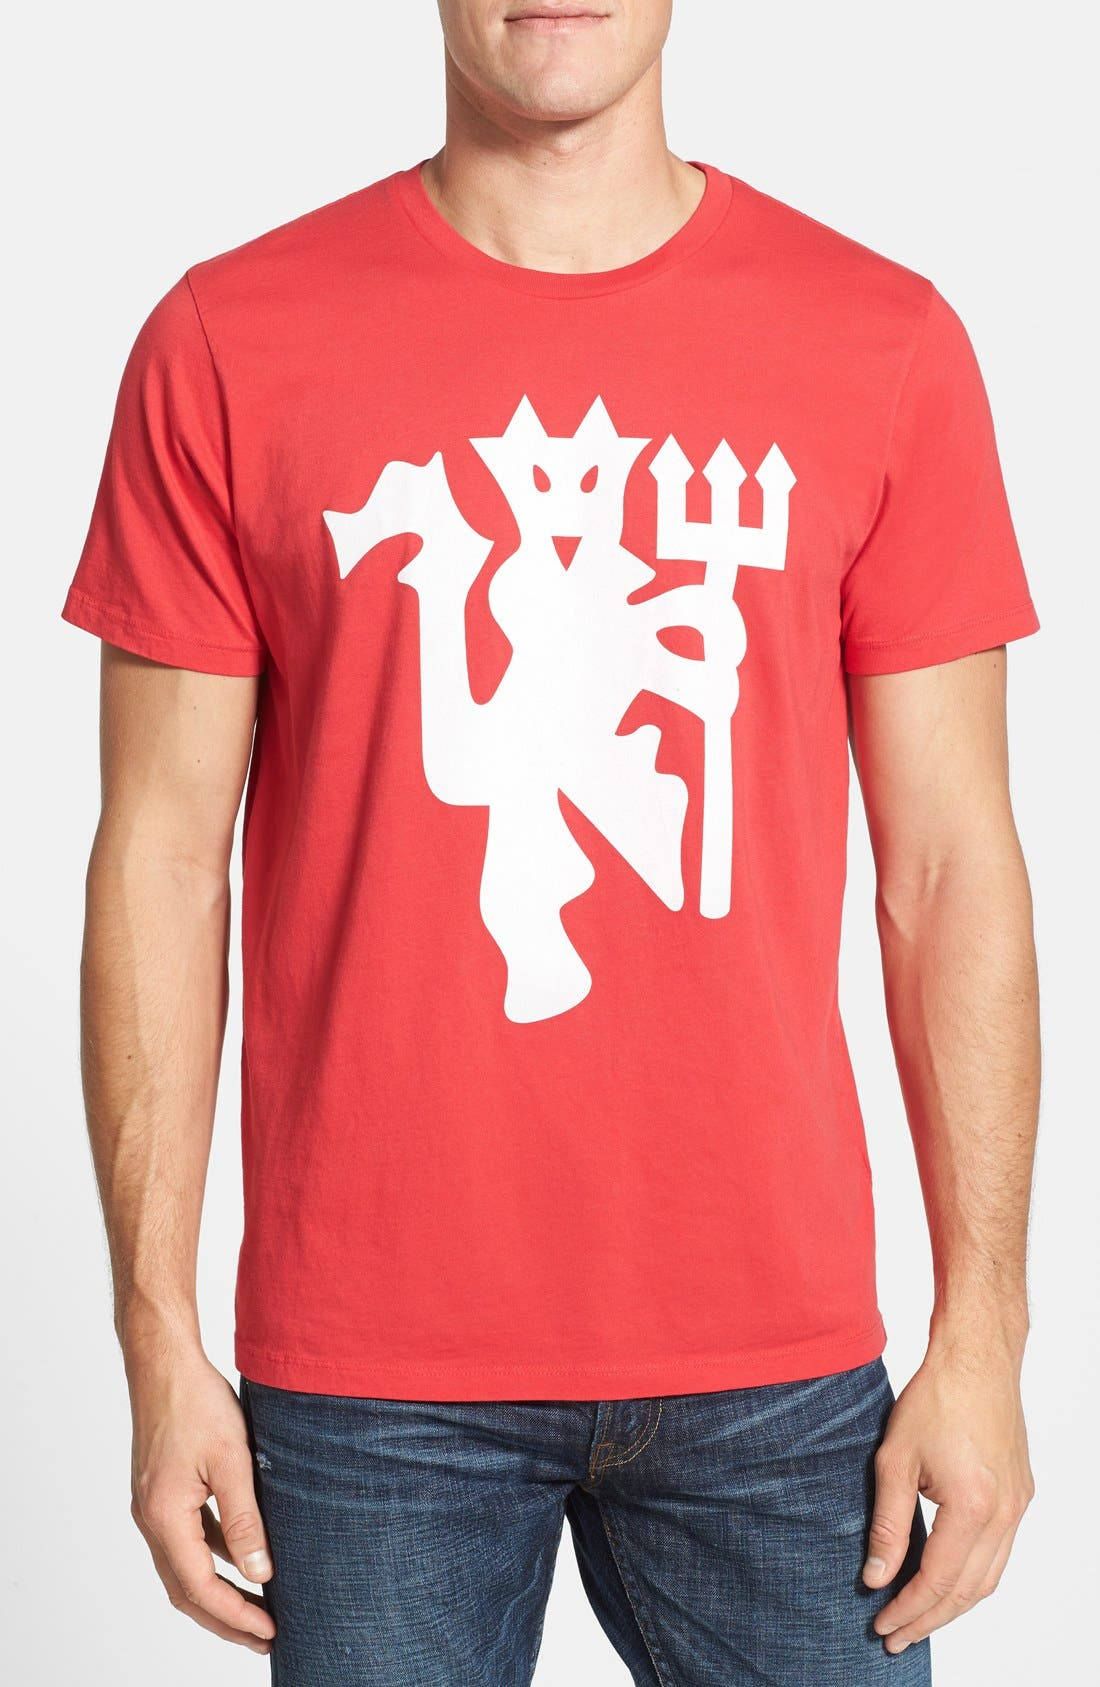 Alternate Image 1 Selected - Junk Food 'Manchester United FC' Graphic T-Shirt